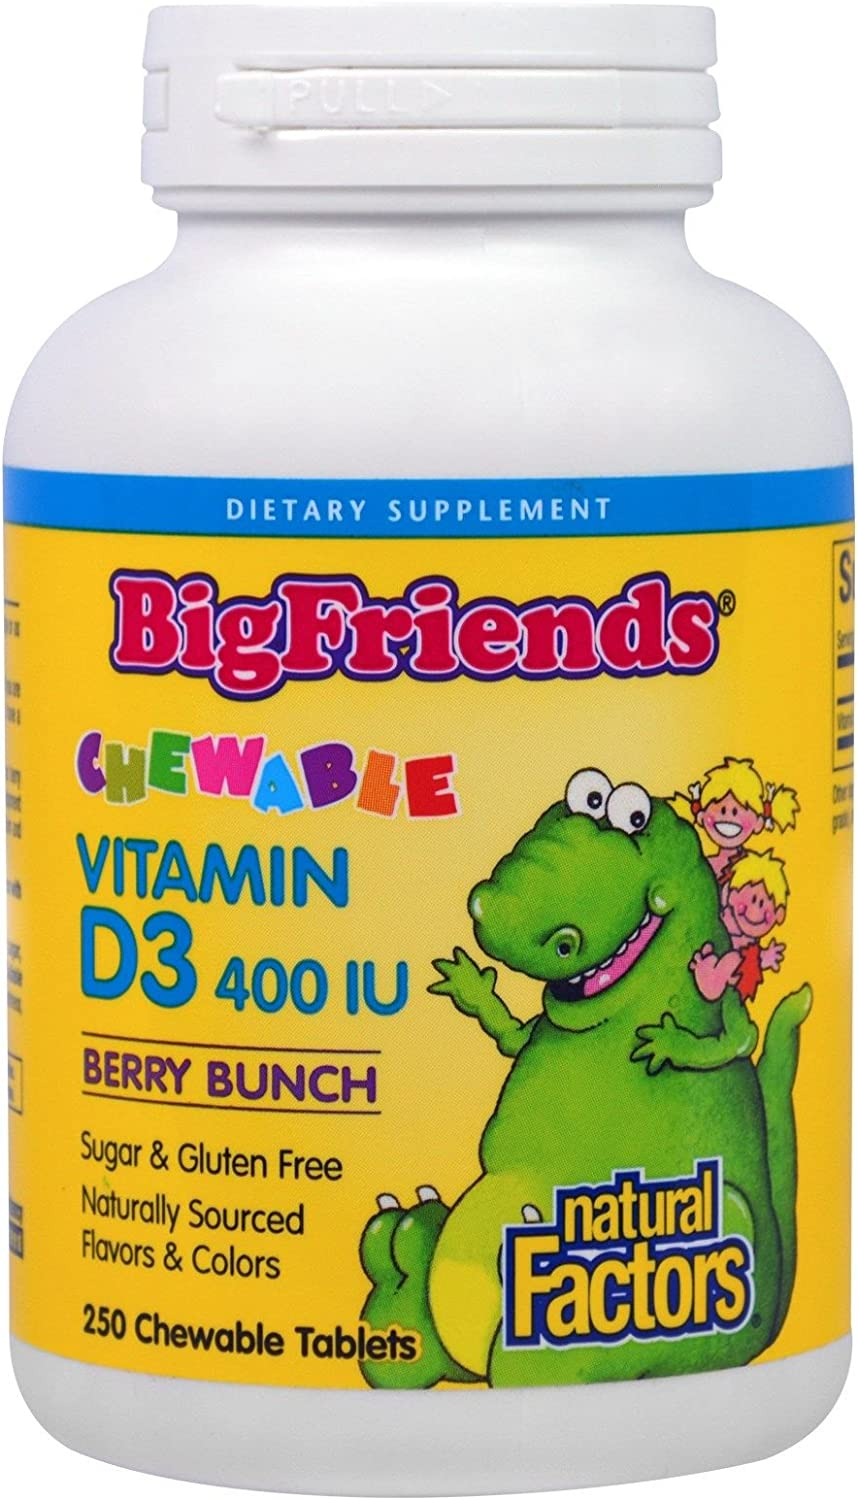 Big Friends Vitamin D3 400 IU Berry Outlet SALE Facto Bunch Chewable Natural We OFFer at cheap prices